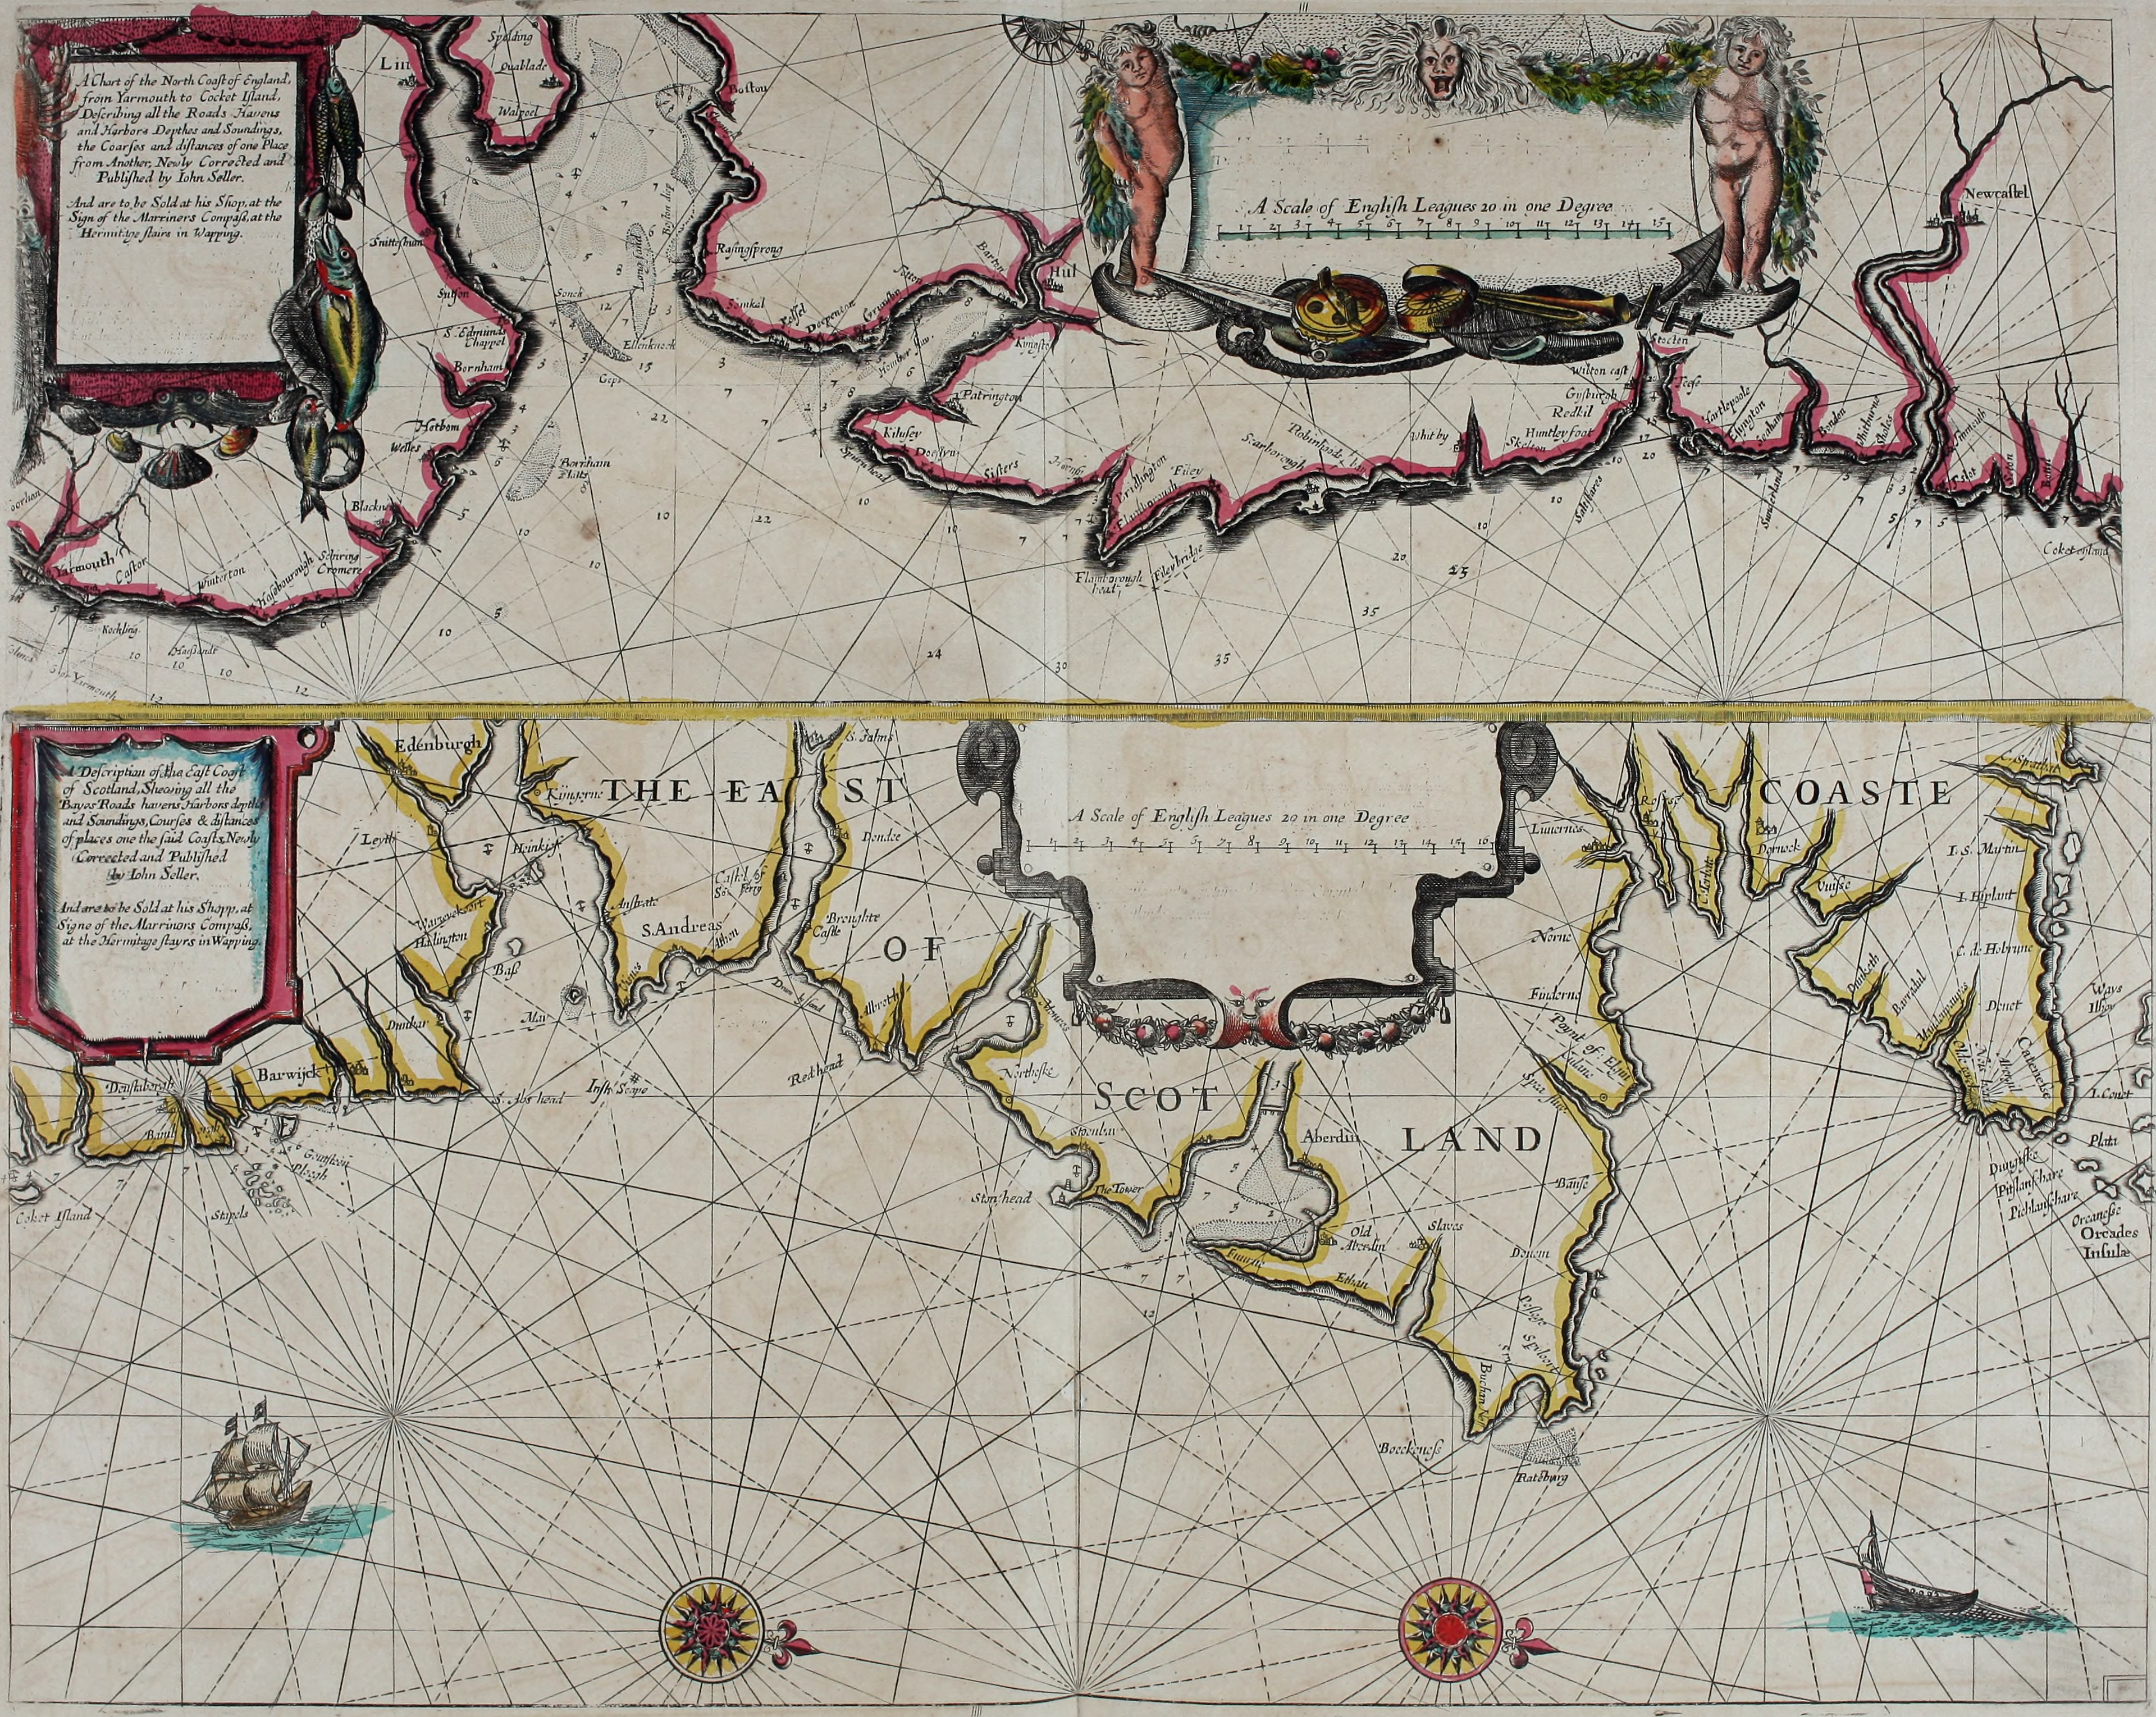 Fileatlas maritimus or a book of charts describeing the sea fileatlas maritimus or a book of charts describeing the sea coasts capes headlands sands shoals rocks and dangers the bayes roads harbors rivers and gumiabroncs Image collections